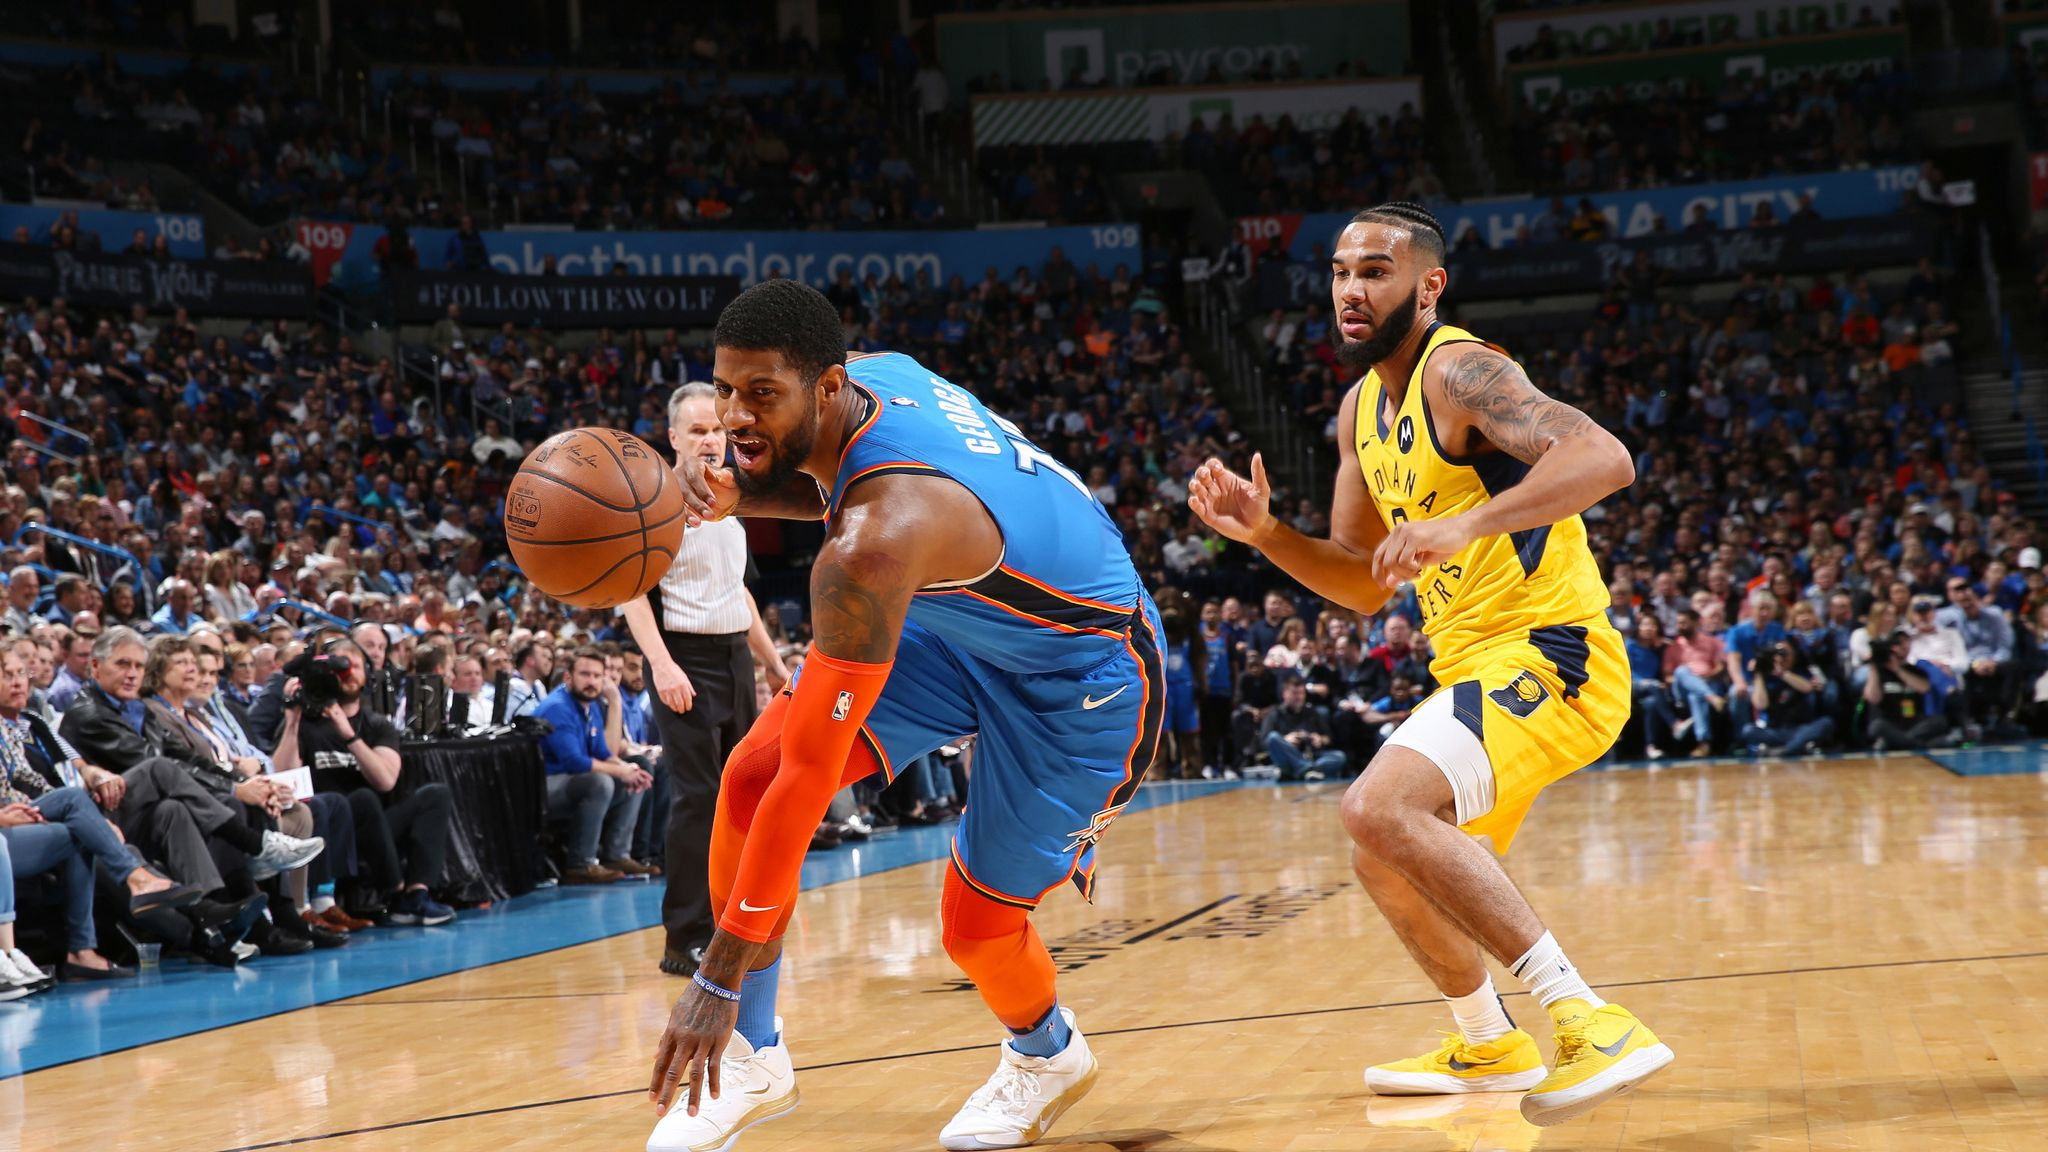 e77d9f4222d Paul George says Oklahoma City Thunder will deliver their gameplan in Game 2  against Portland Trail Blazers